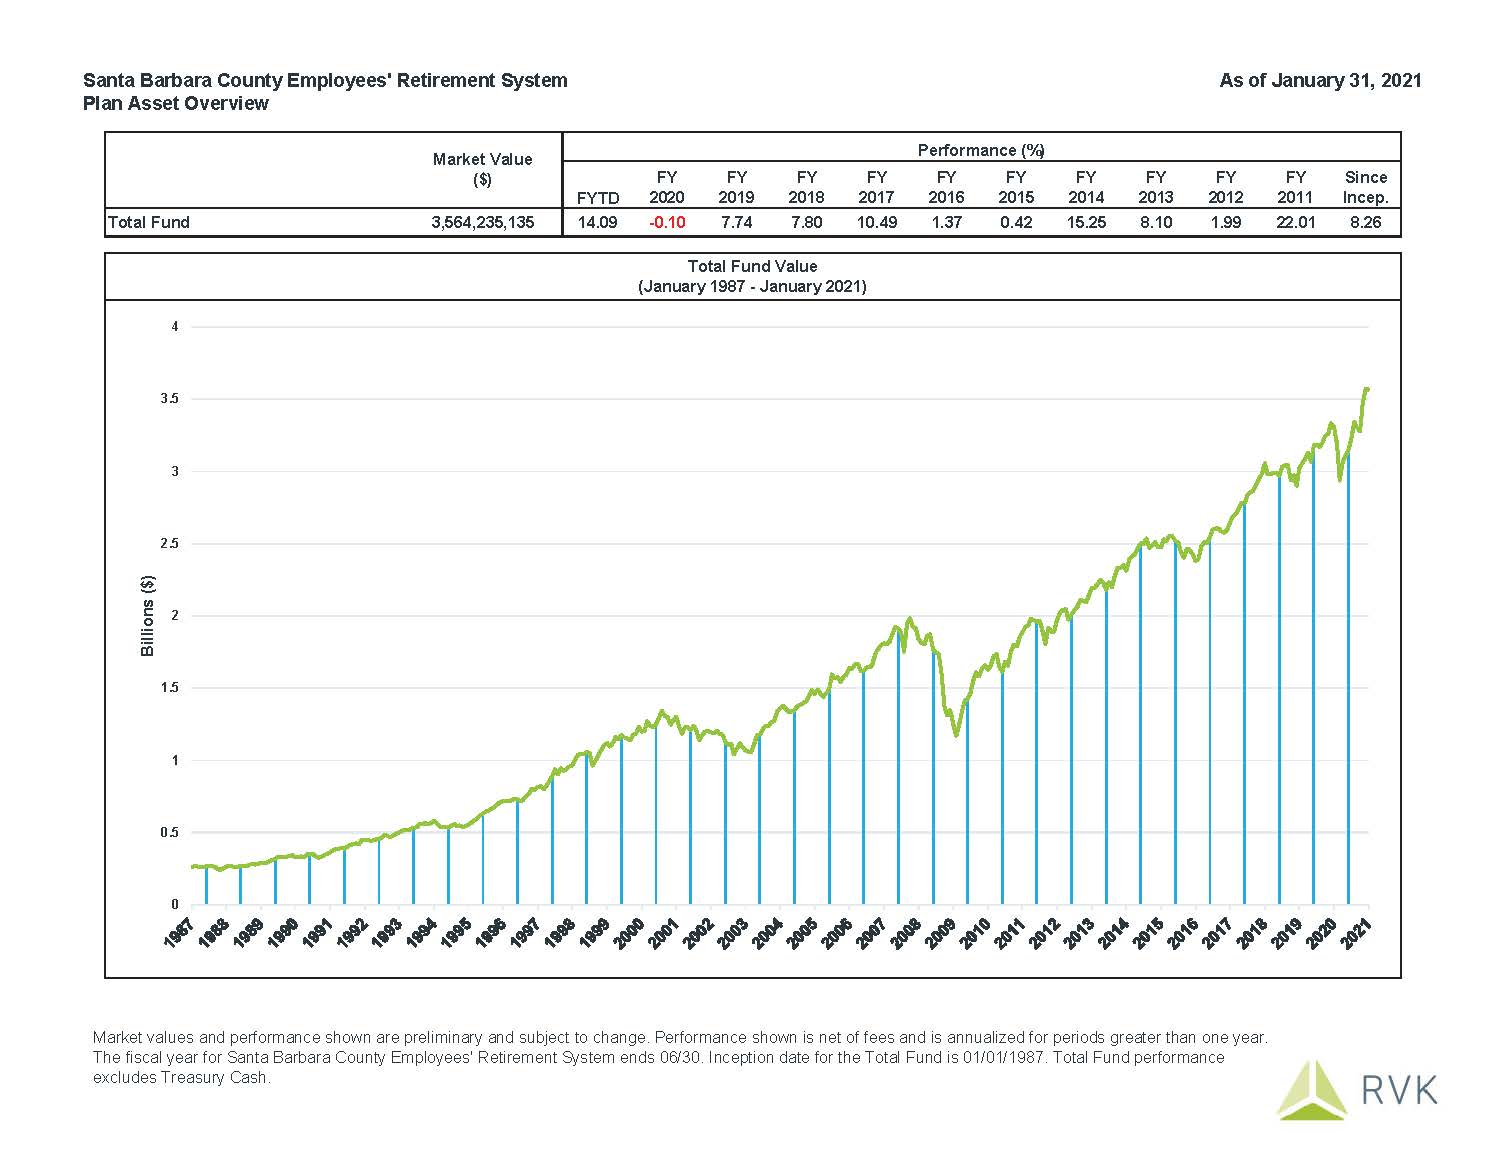 January 2021 Fund Performance: Fiscal Year to Date performance is 14.09%.